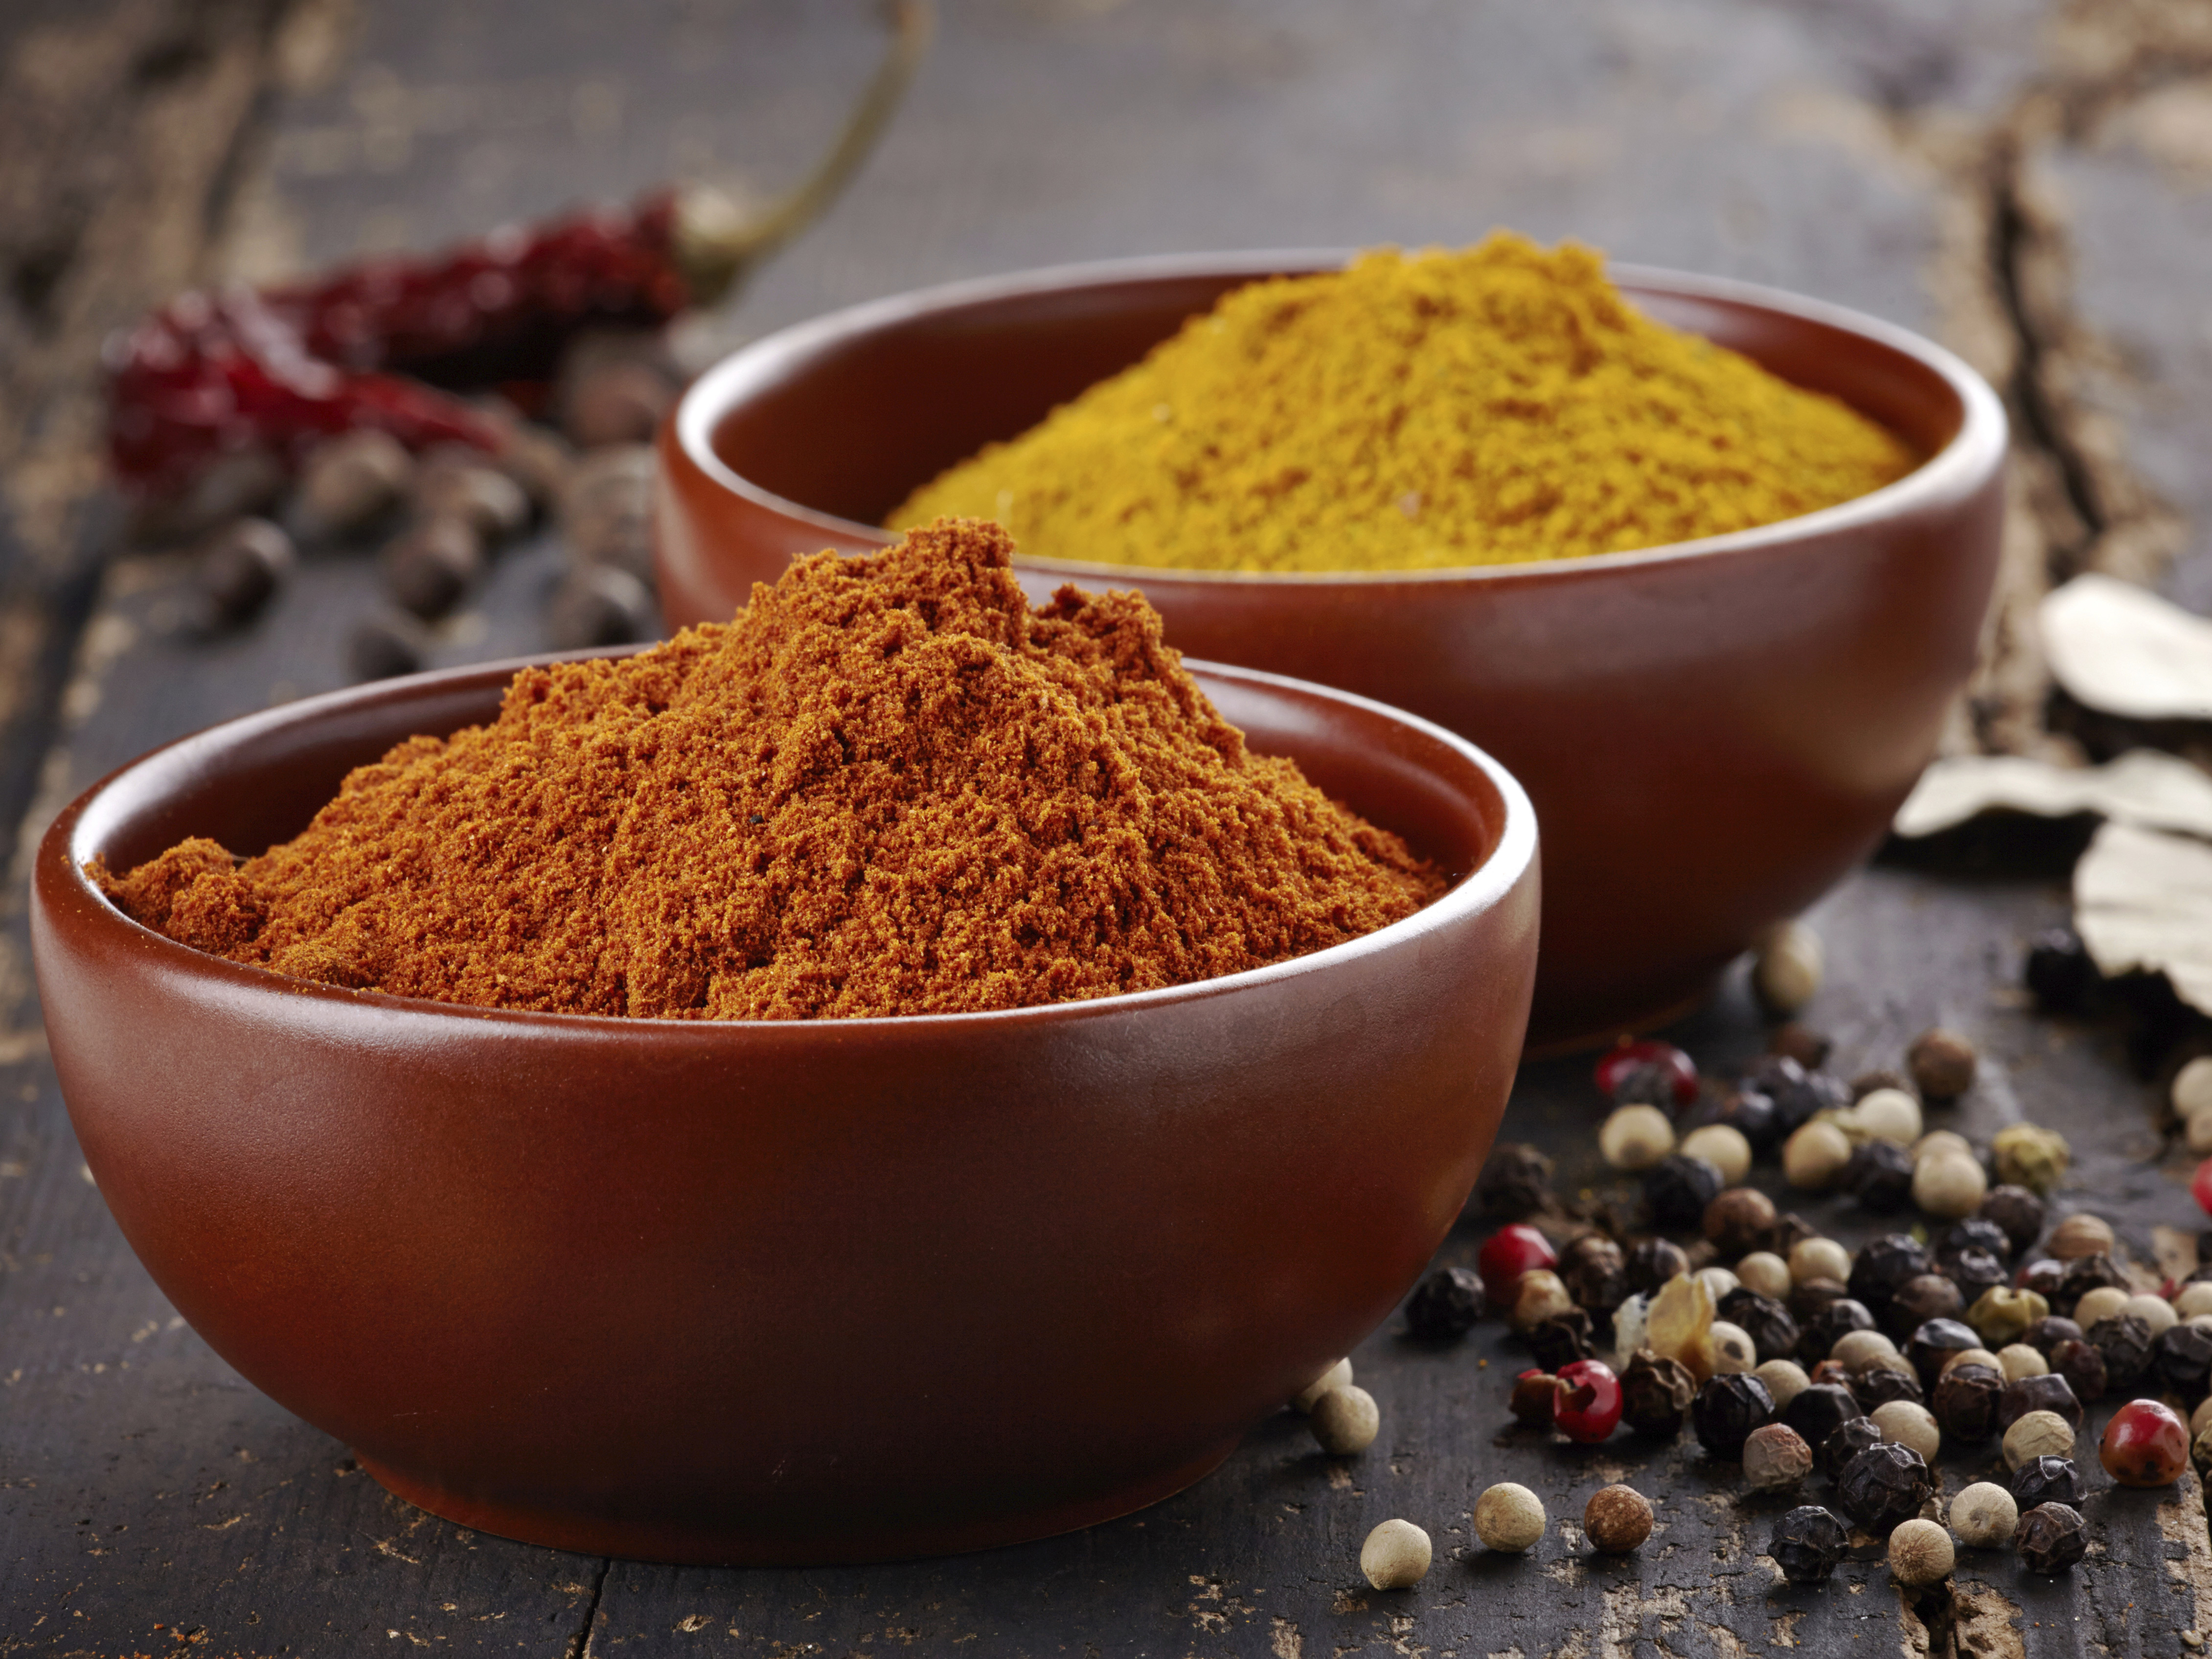 The spice that can improve prostate health